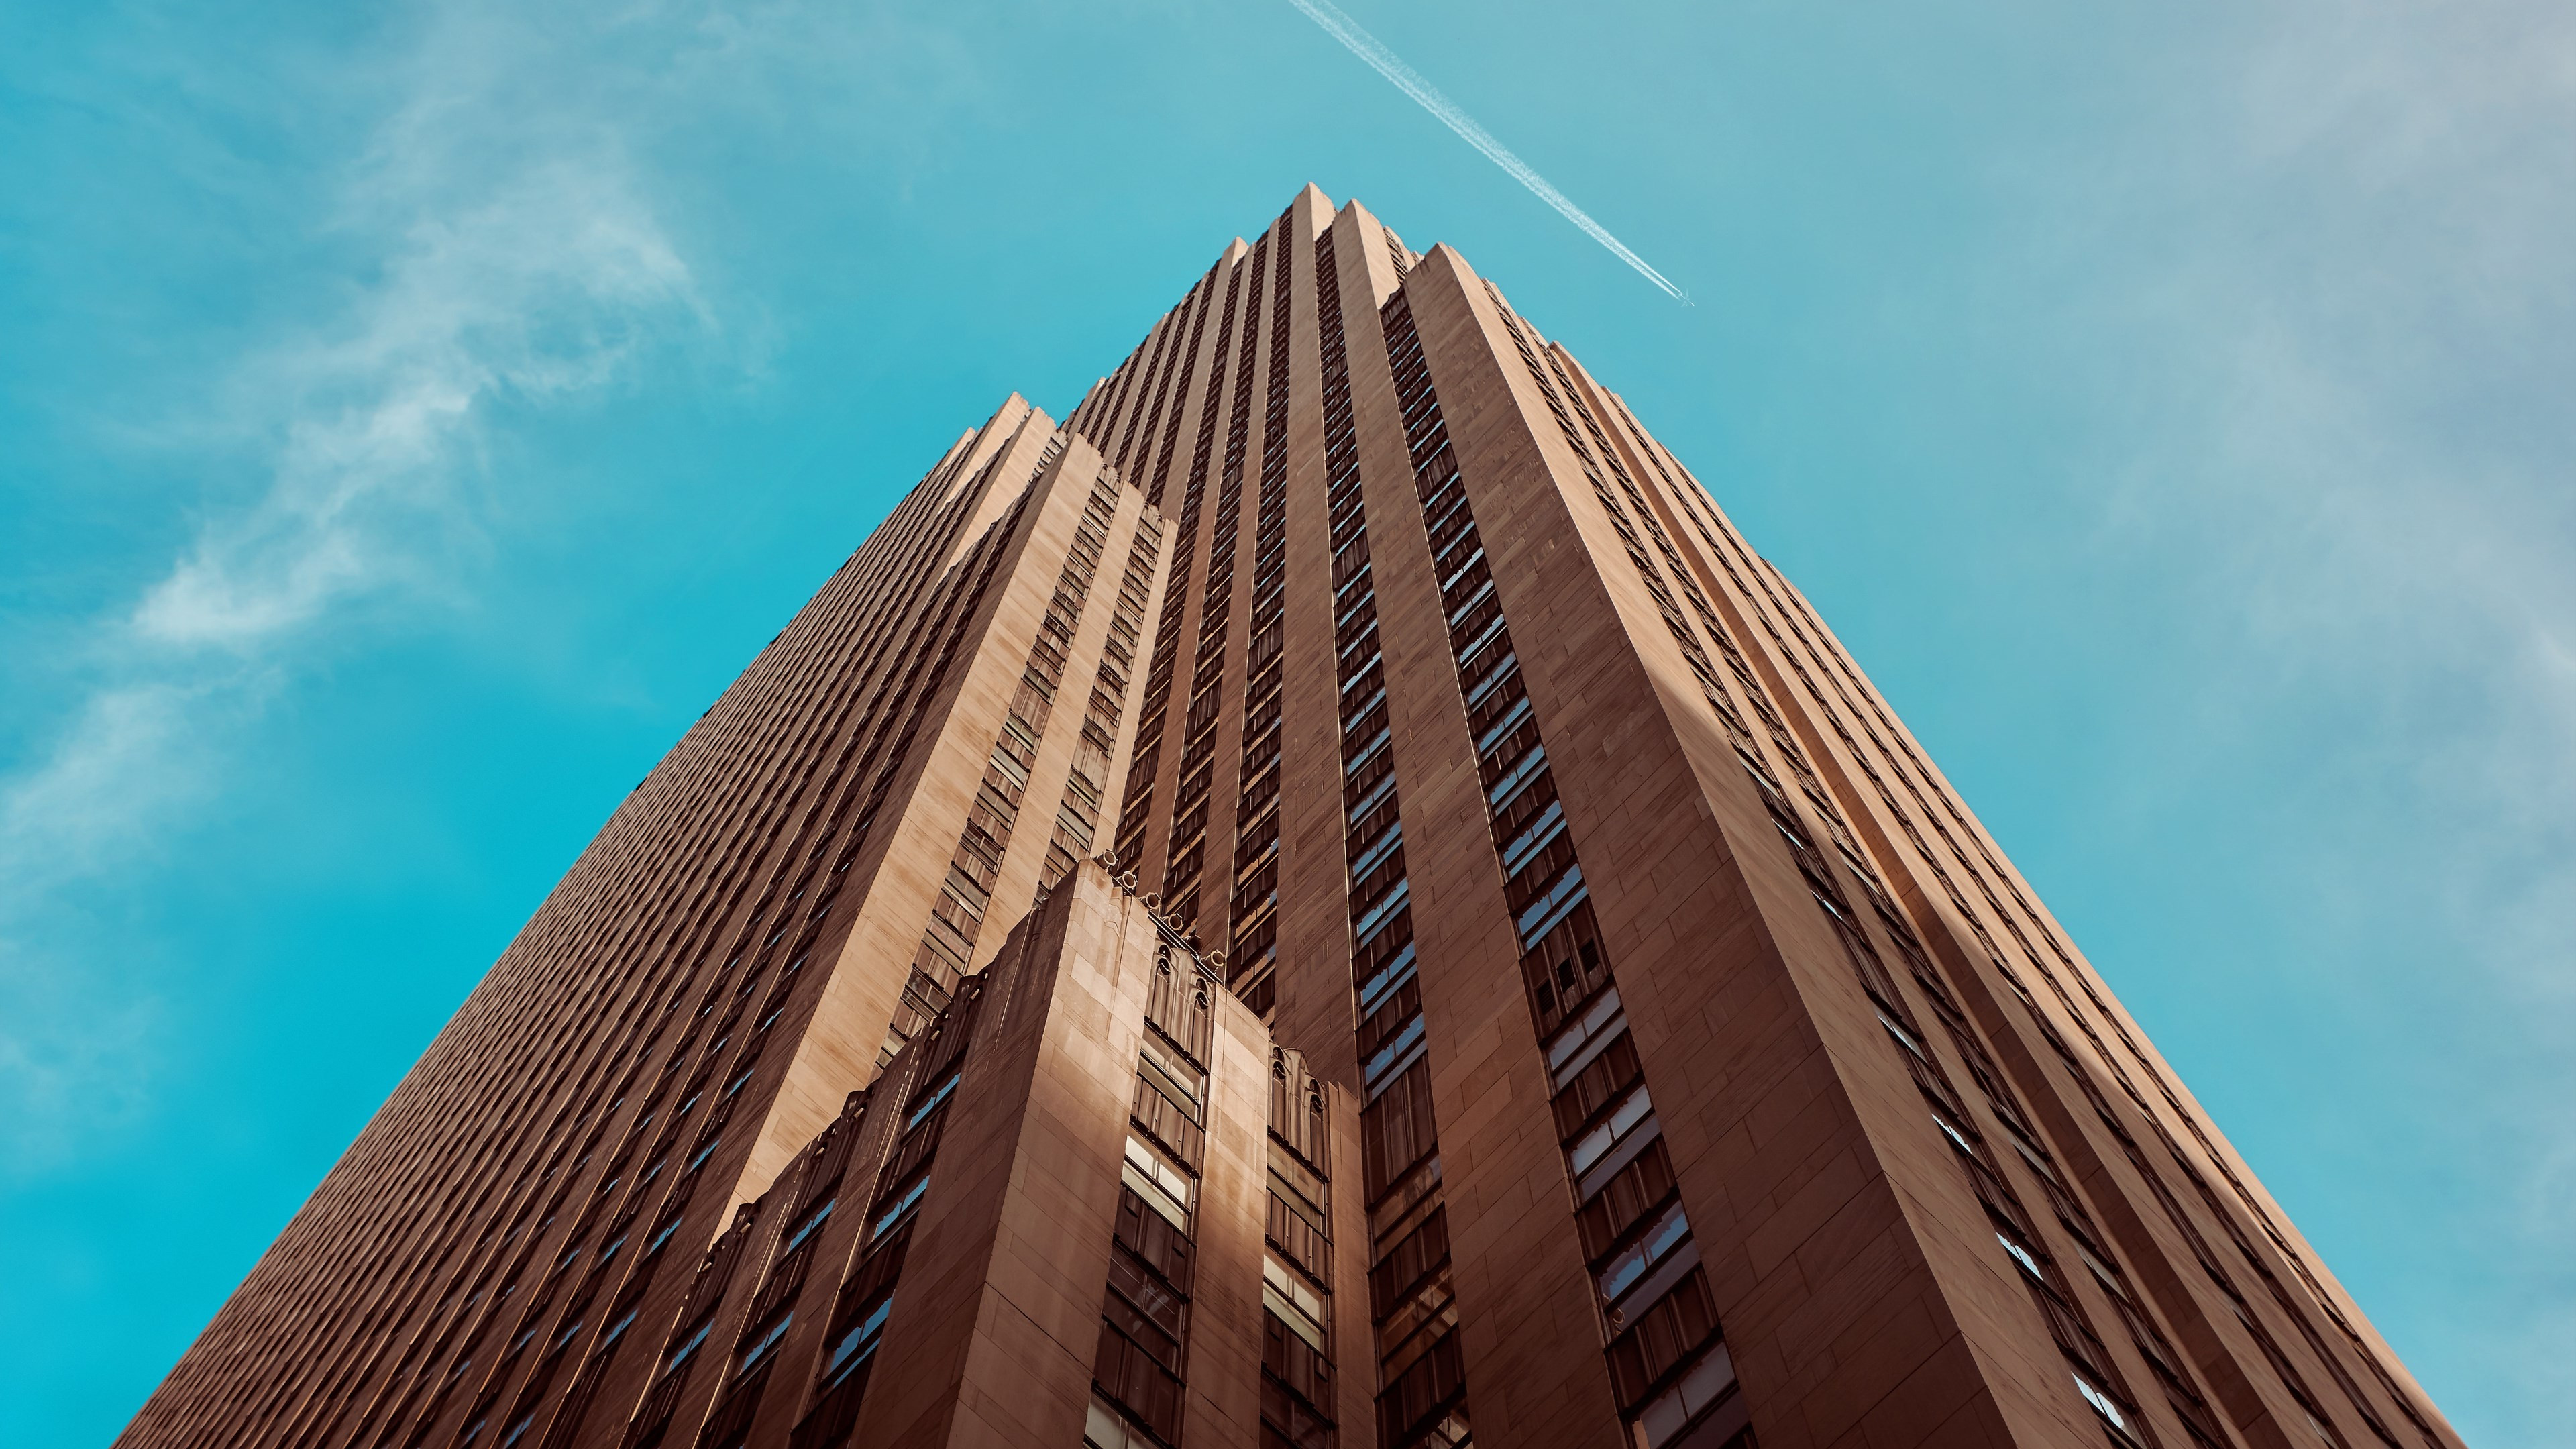 Rockefeller building touching the sky wallpaper 3840x2160